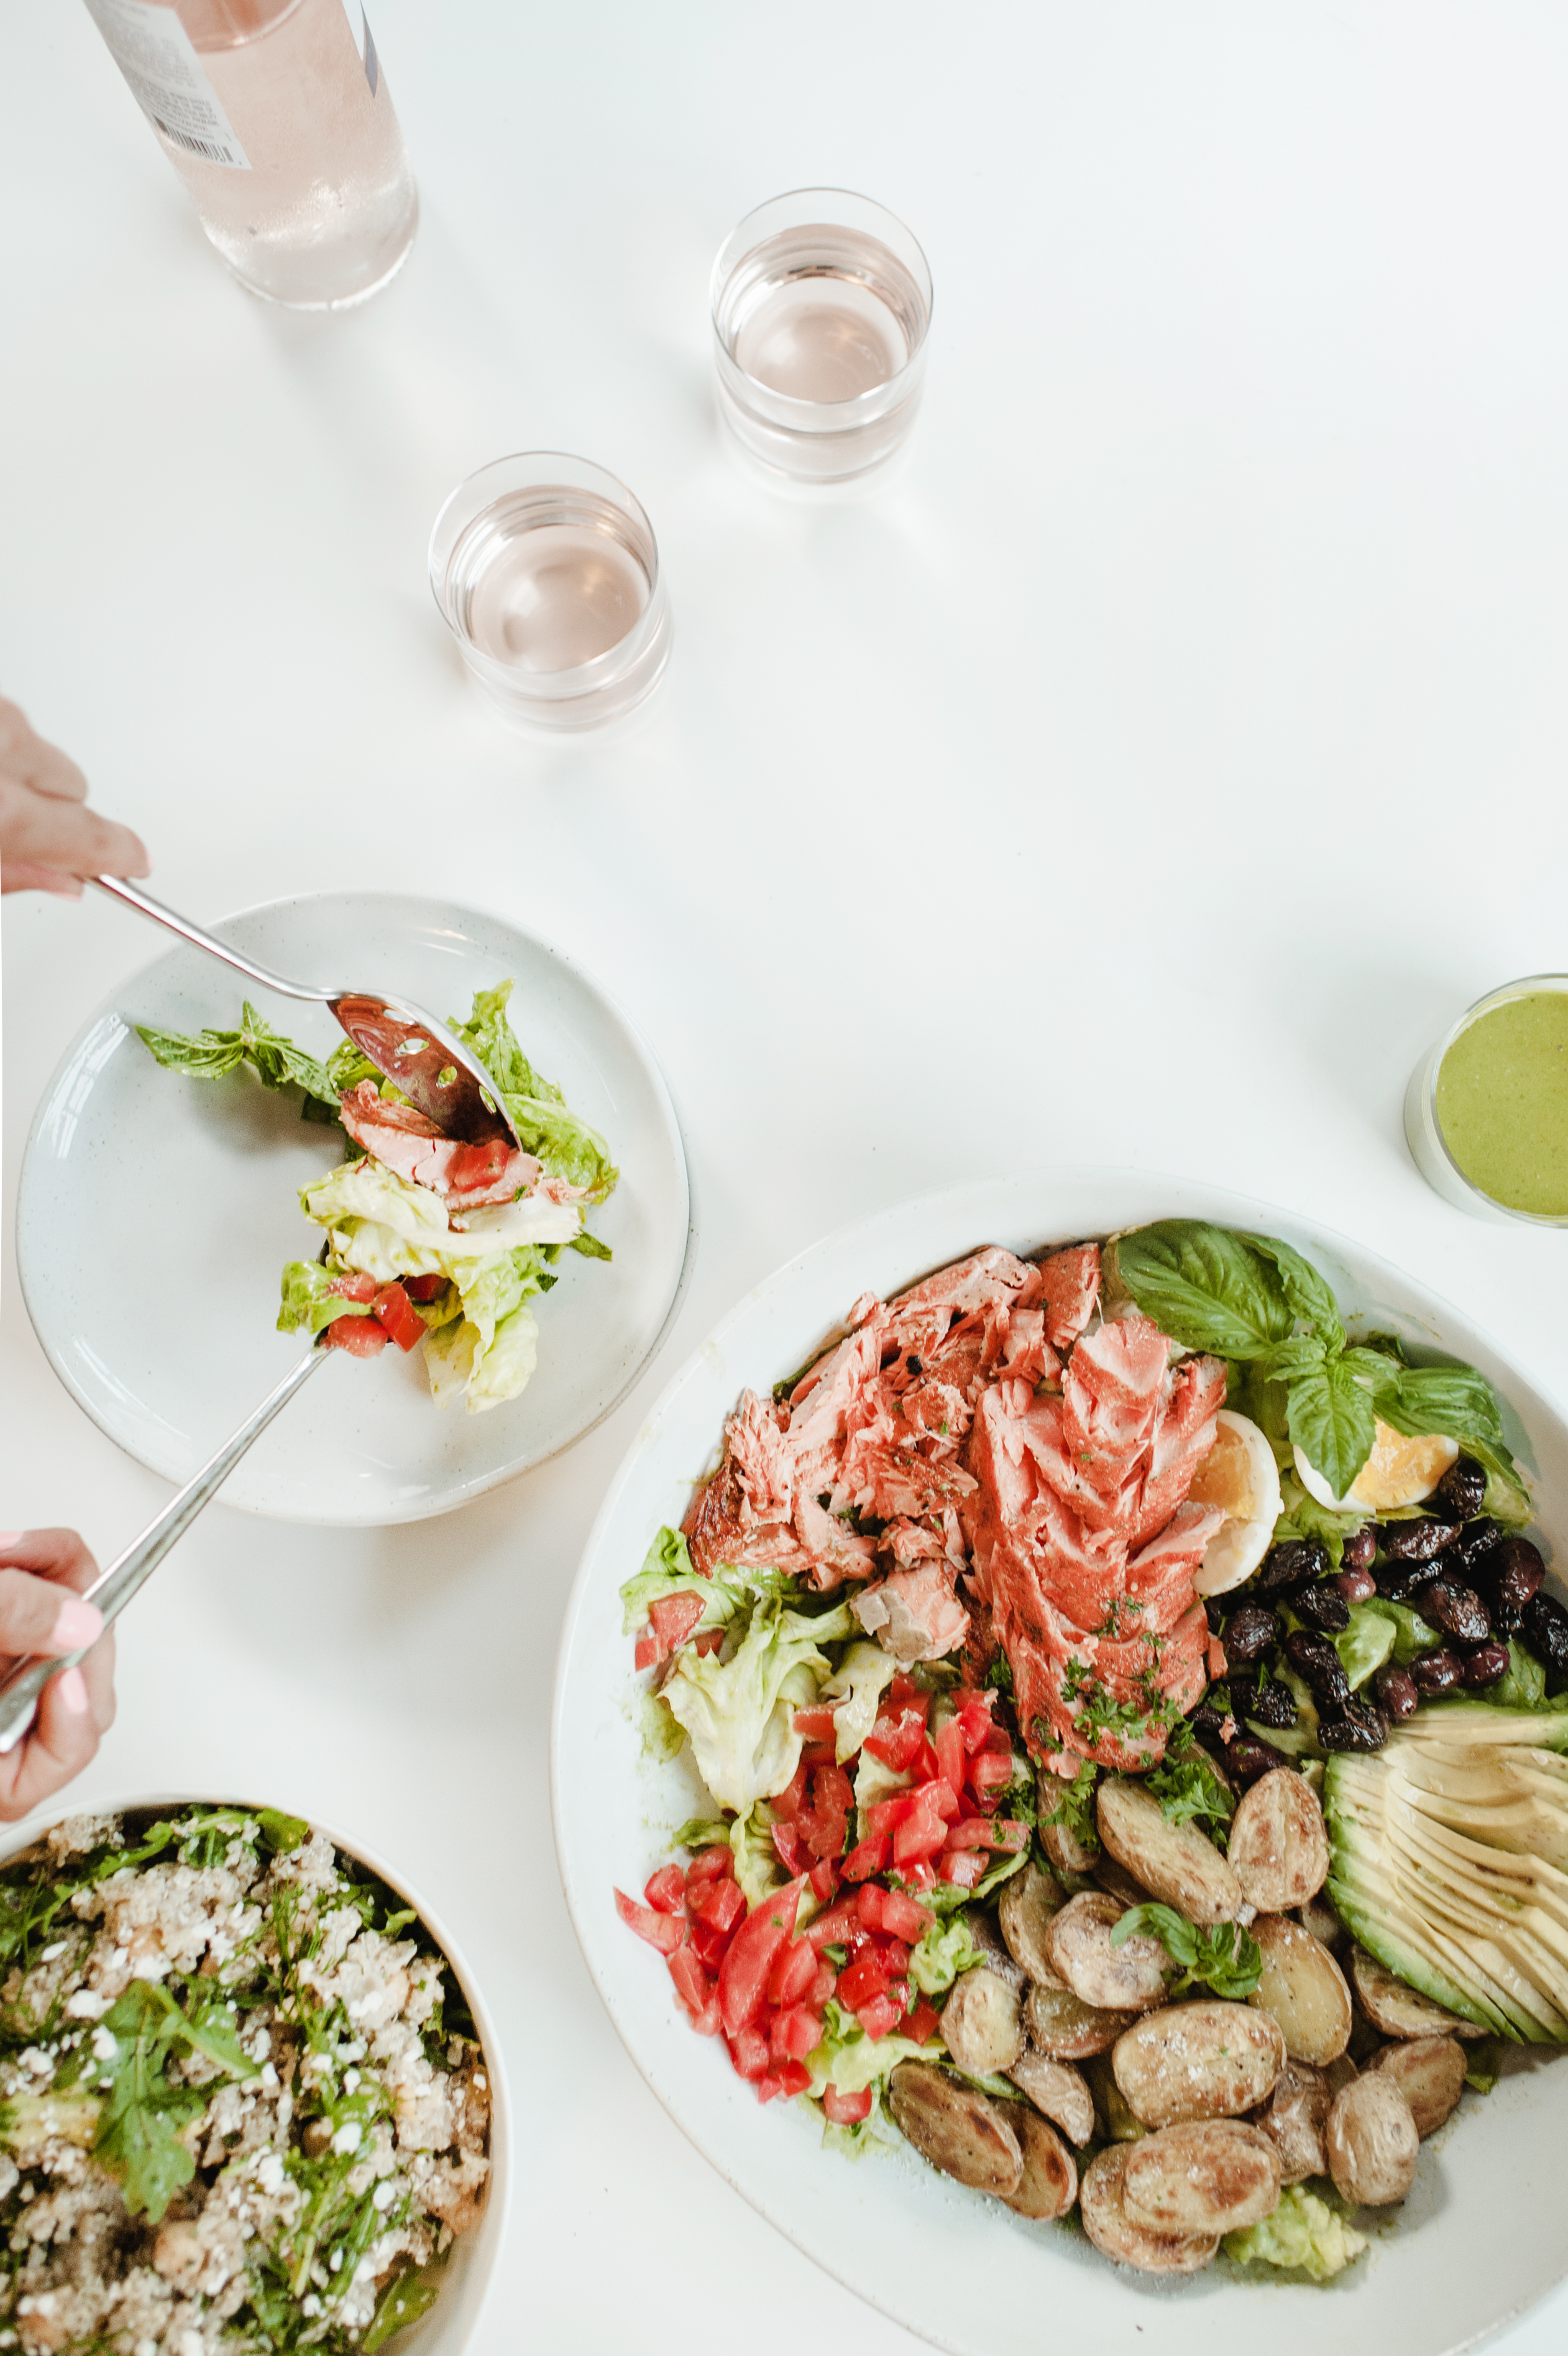 The Salmon Nicoise Salad And Daily Basil Dressing Simply Real Health